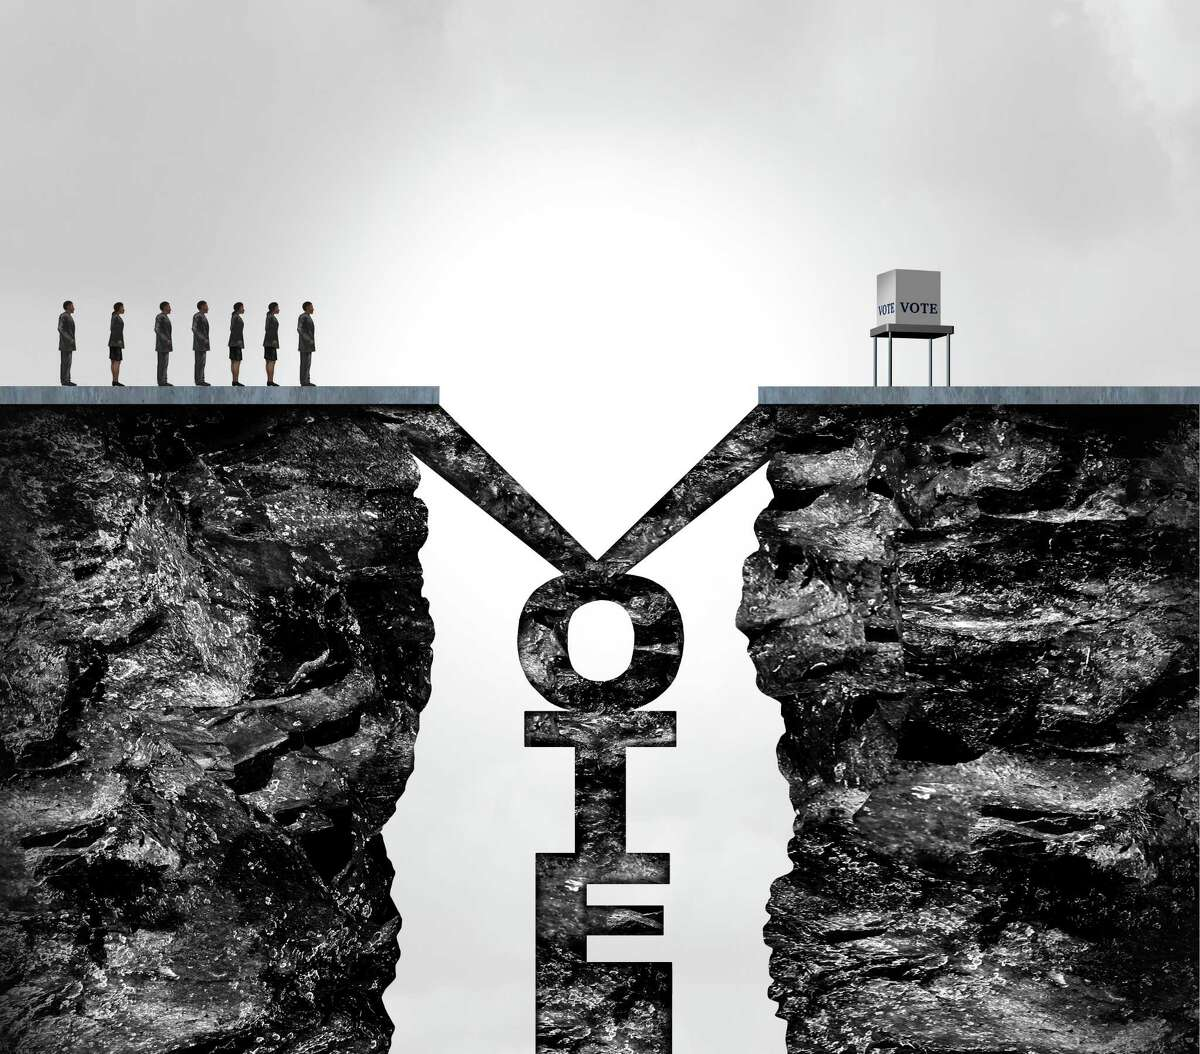 Vote challenges and voting problem or voter suppression as an election issue as a political policy for difficulty casting votes in the ballot box for presidential or congresional elections with 3D illustration elements.